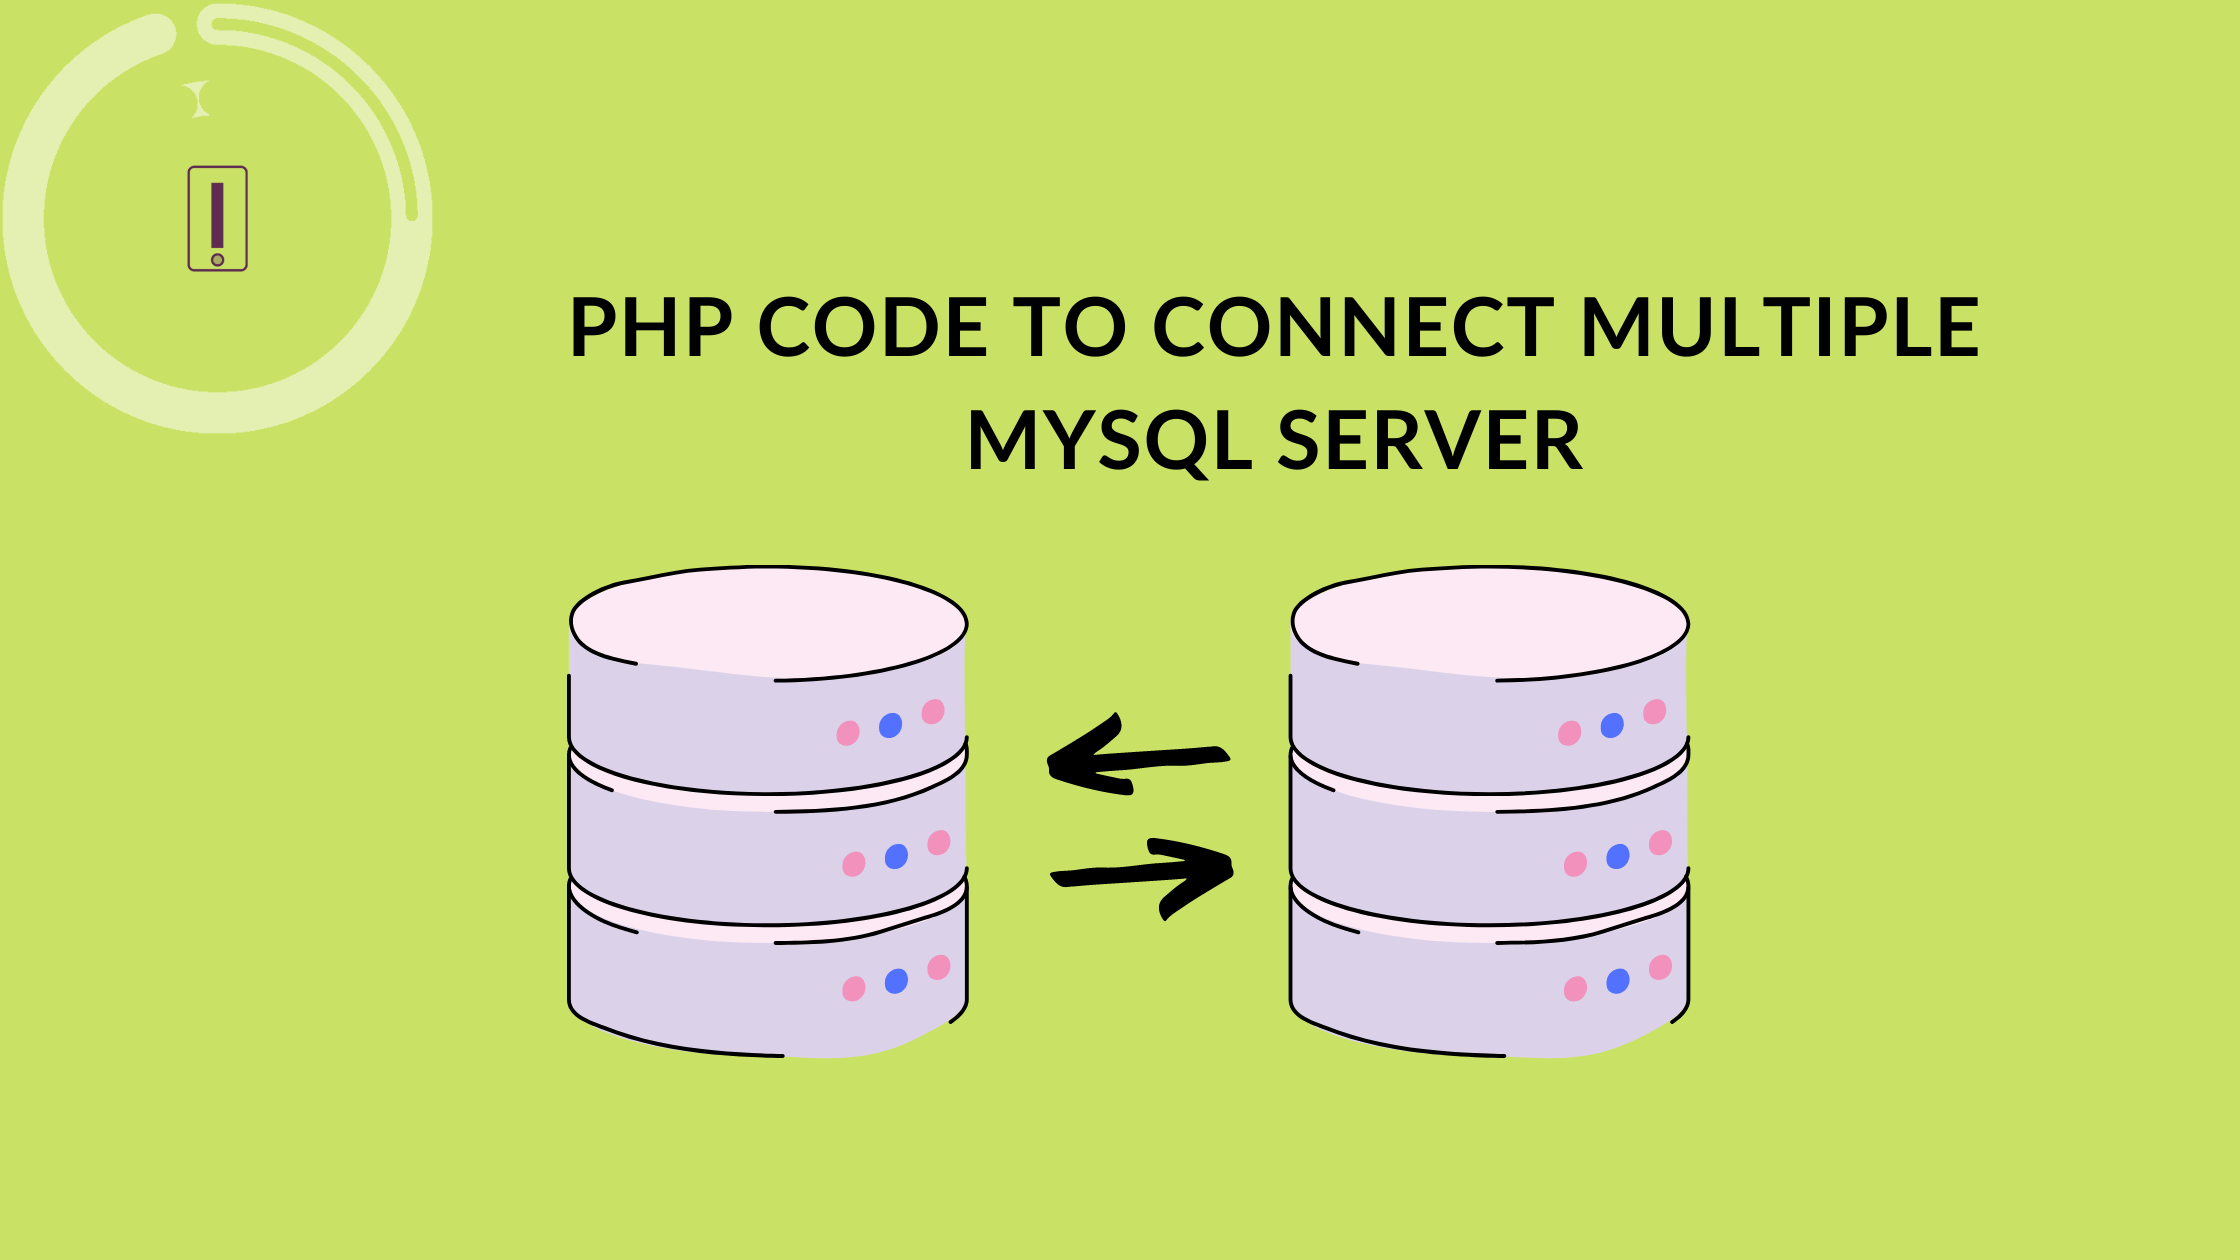 PHP code to connect multiple MySQL server multiple database simultaneously